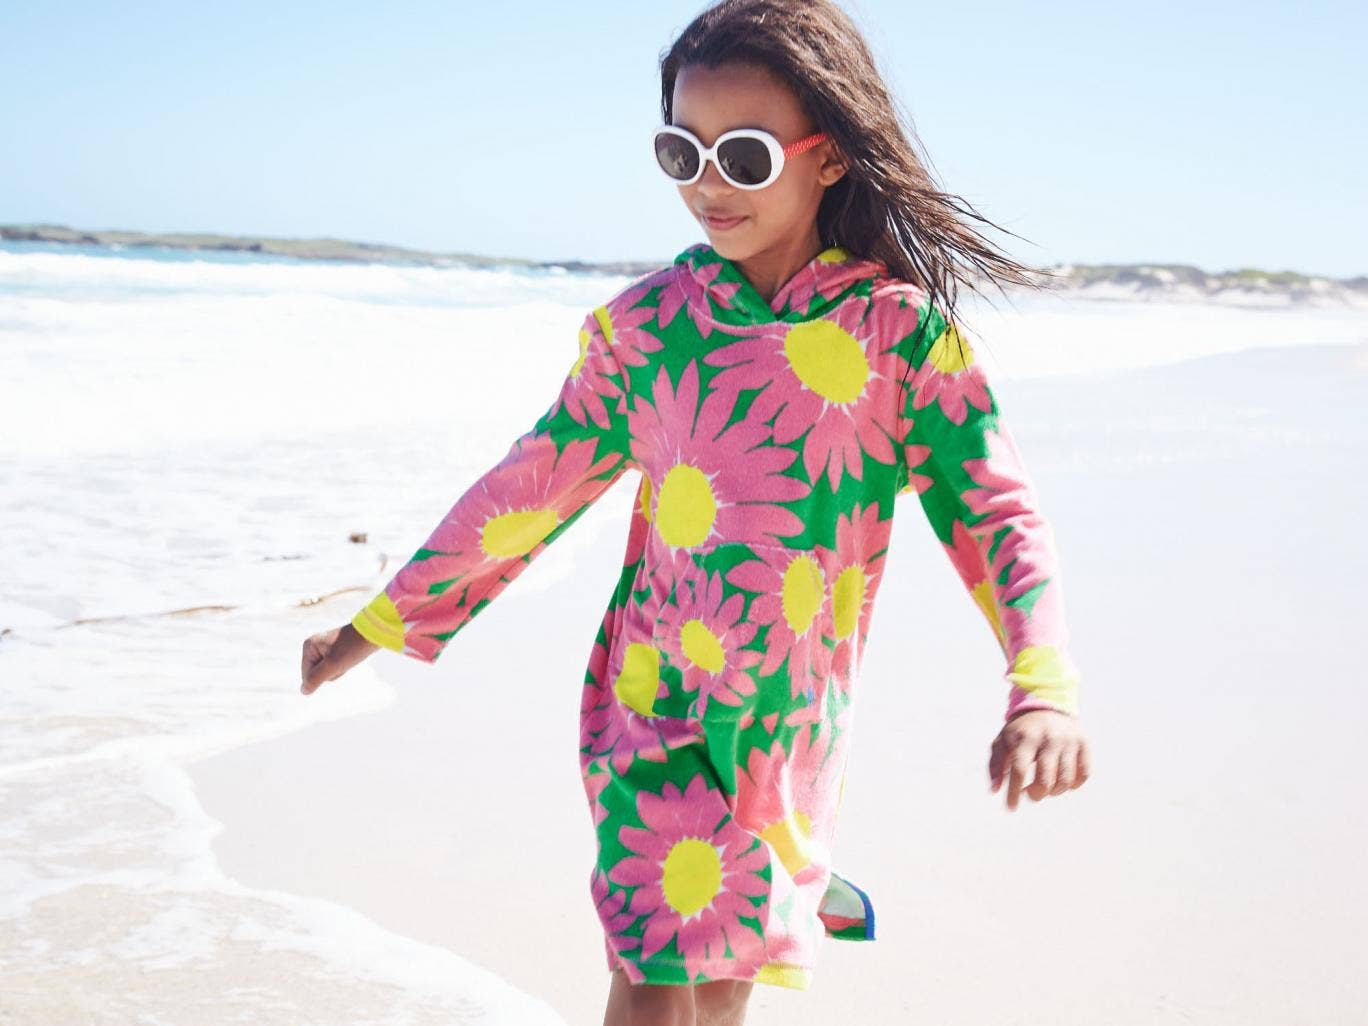 11 Best Sunglasses For Kids The Independent